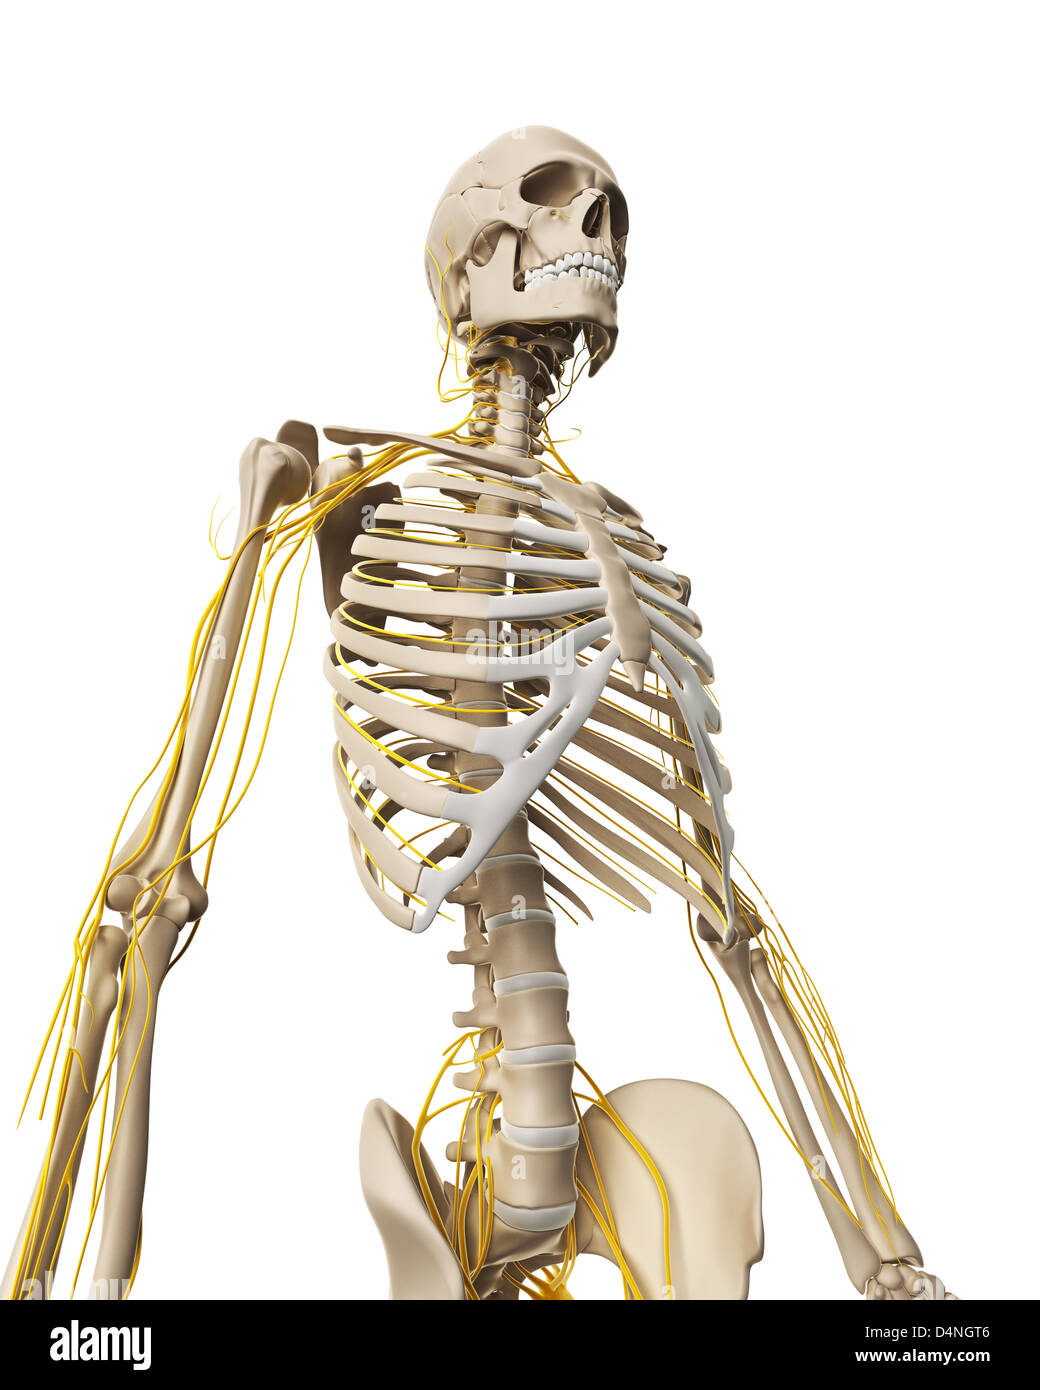 Male nerve system - Stock Image